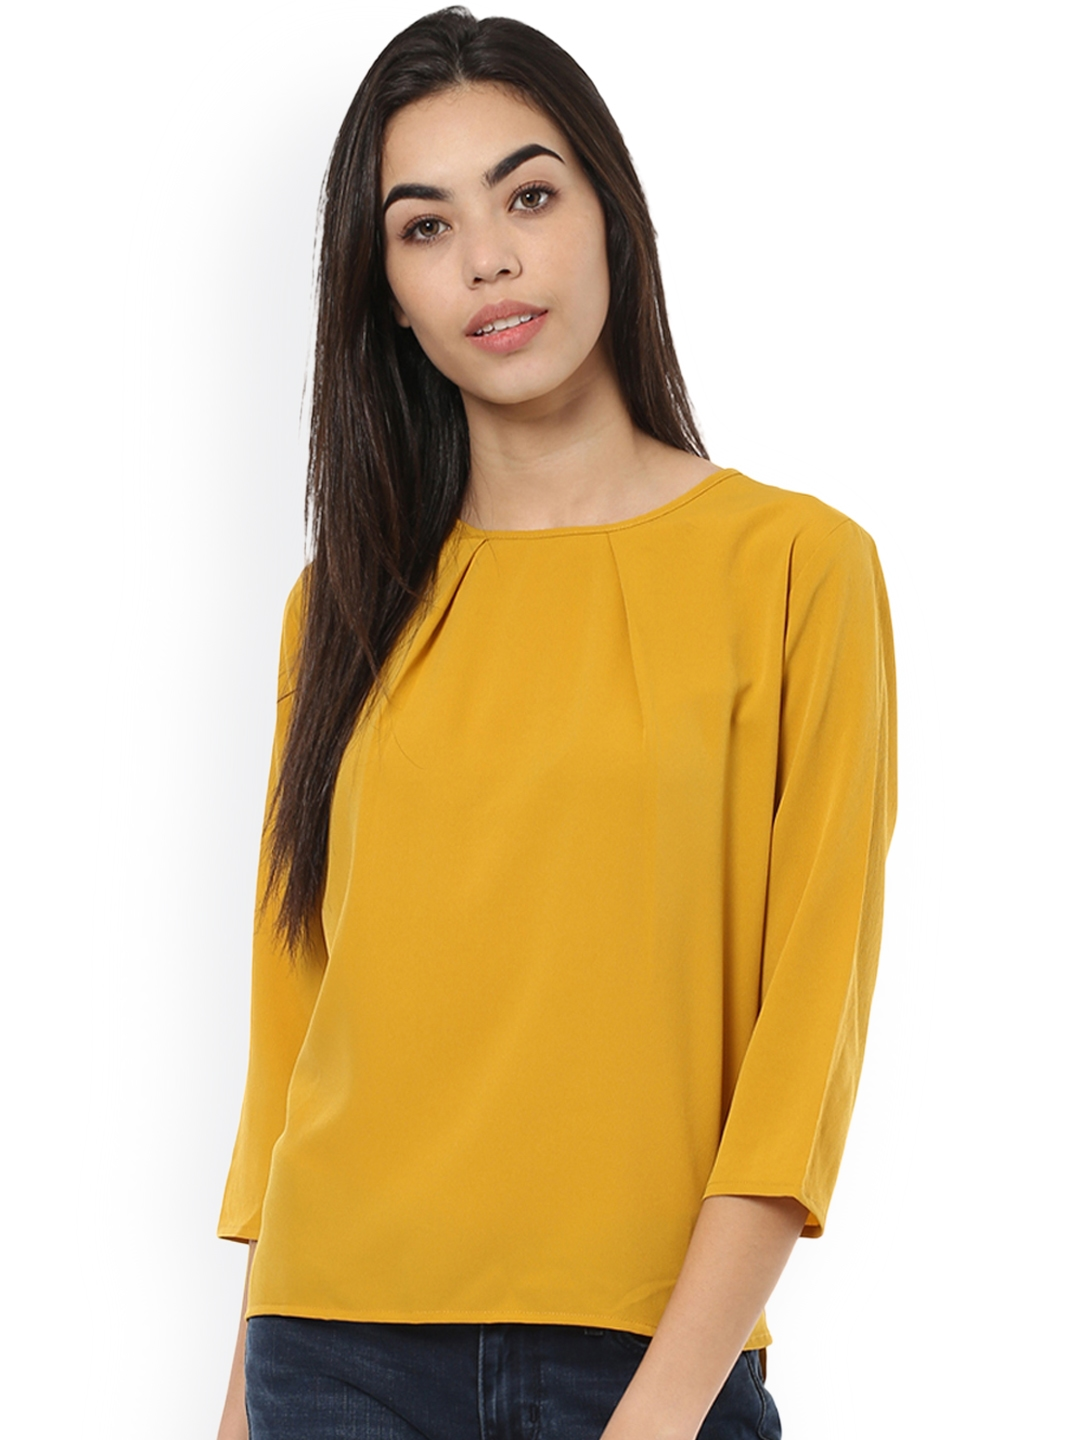 edf867e97a96a0 Buy Harpa Women Mustard Yellow Solid Top - Tops for Women 2192030 ...